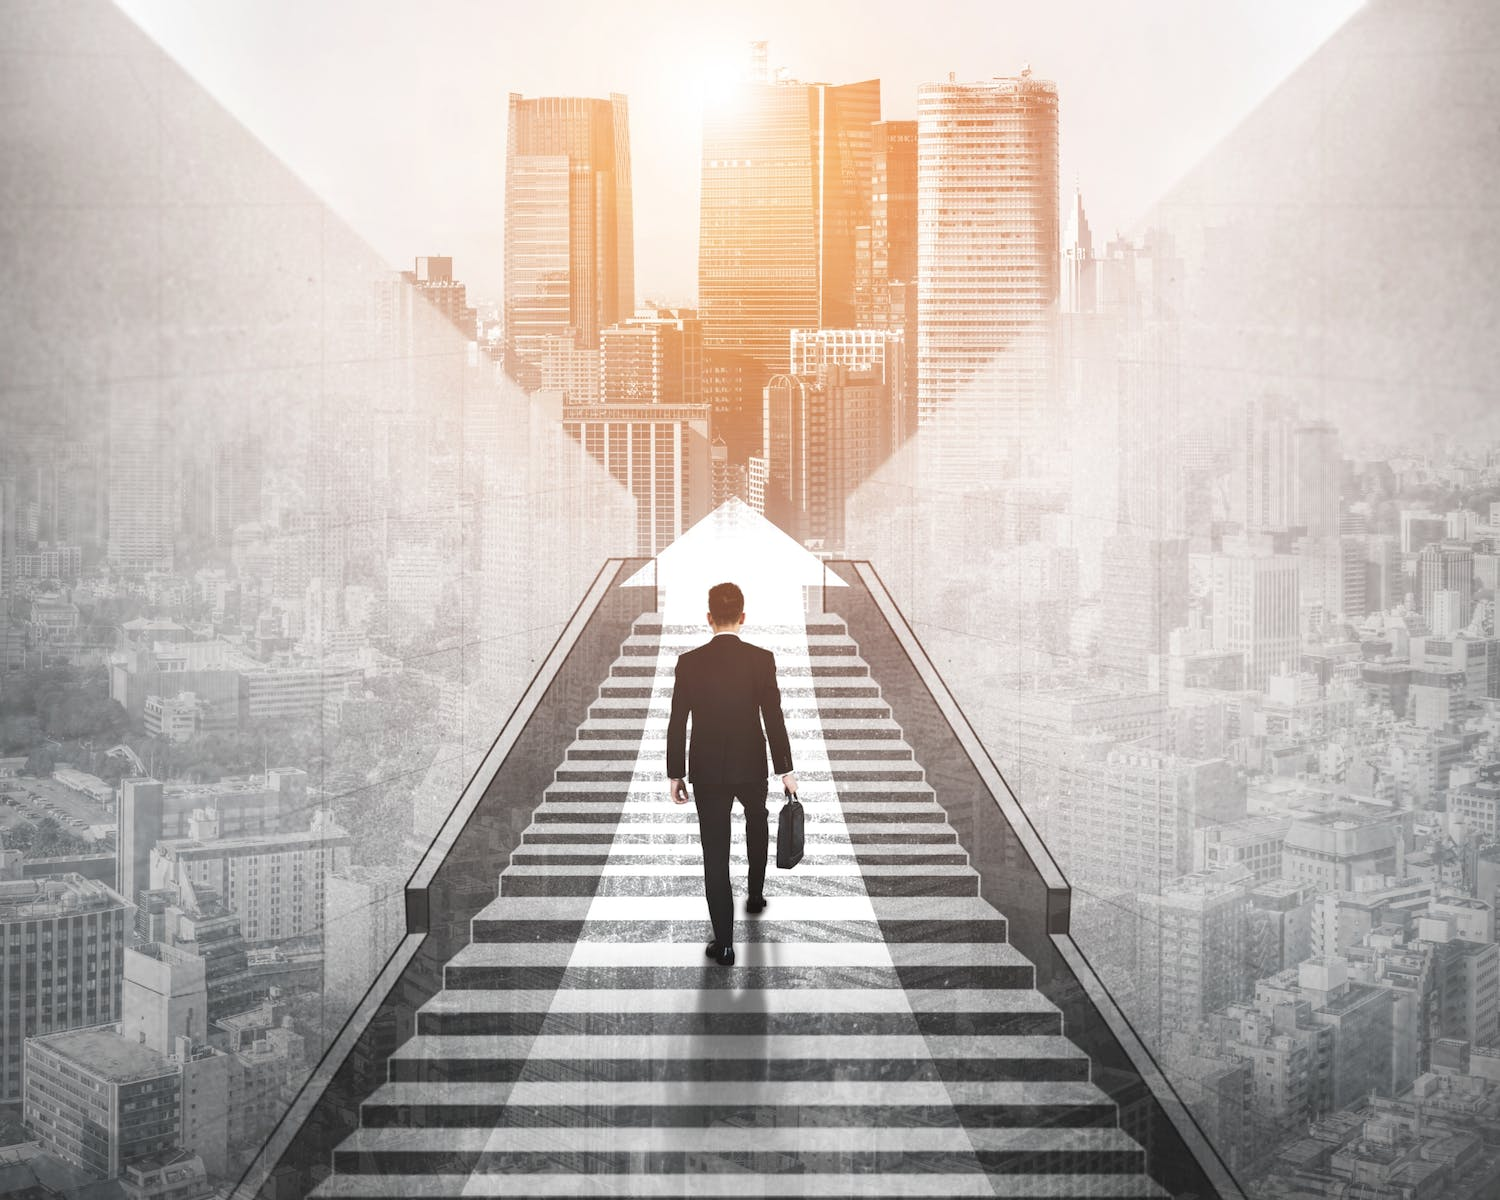 A futuristic graphic showing a businessman walking up a set of stairs towards some skyscrapers.